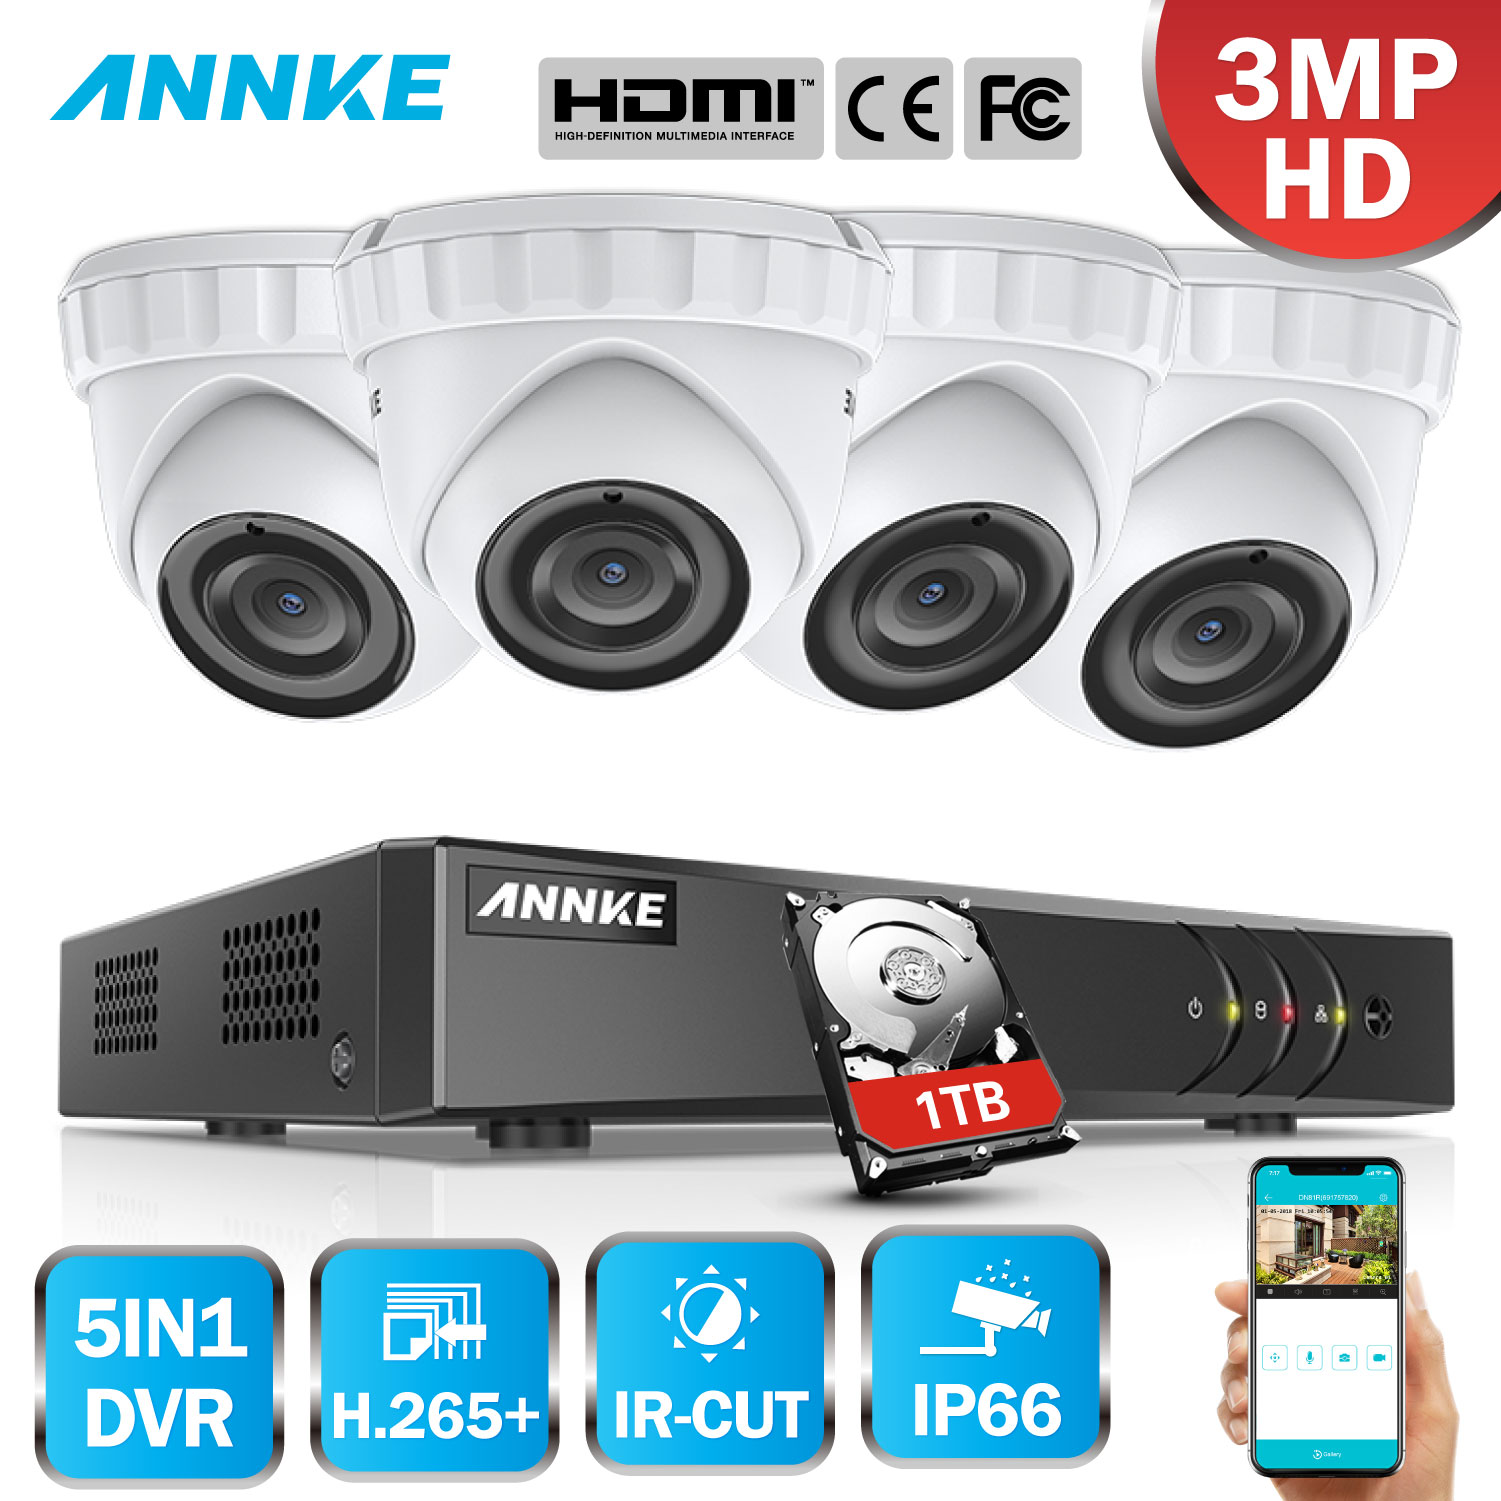 ANNKE 8CH 3MP 5in1 CCTV DVR HD 4PCS 3MP TVI Security Camera Outdoor Weatherproof Dome Camera Home Video Surveillance System KitANNKE 8CH 3MP 5in1 CCTV DVR HD 4PCS 3MP TVI Security Camera Outdoor Weatherproof Dome Camera Home Video Surveillance System Kit